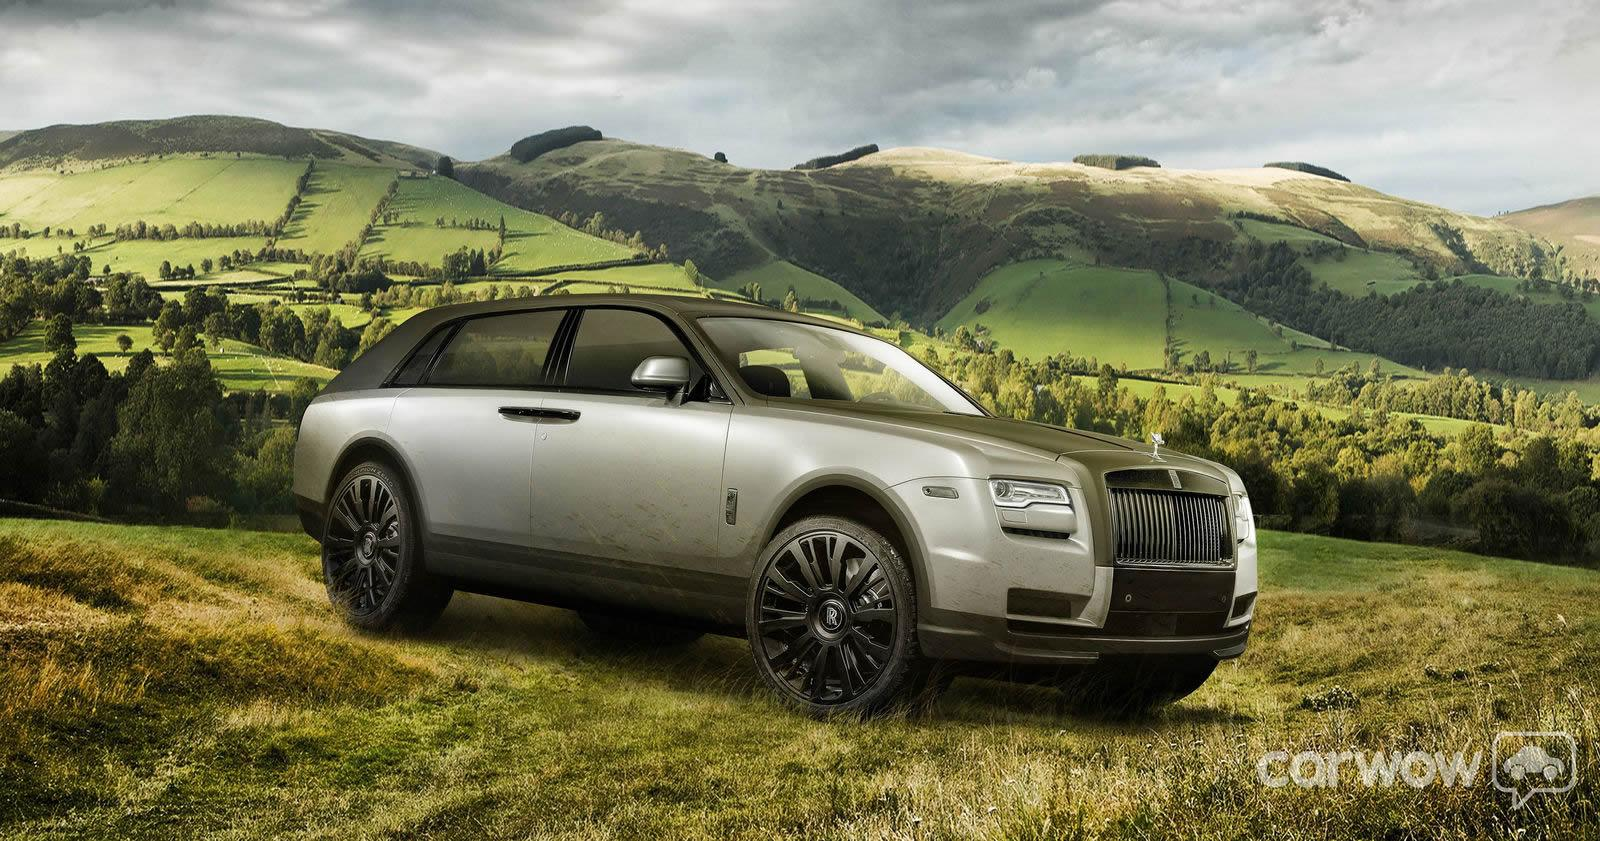 2015 rolls royce suv crossover rendering by carwow uk 3 egmcartech. Black Bedroom Furniture Sets. Home Design Ideas